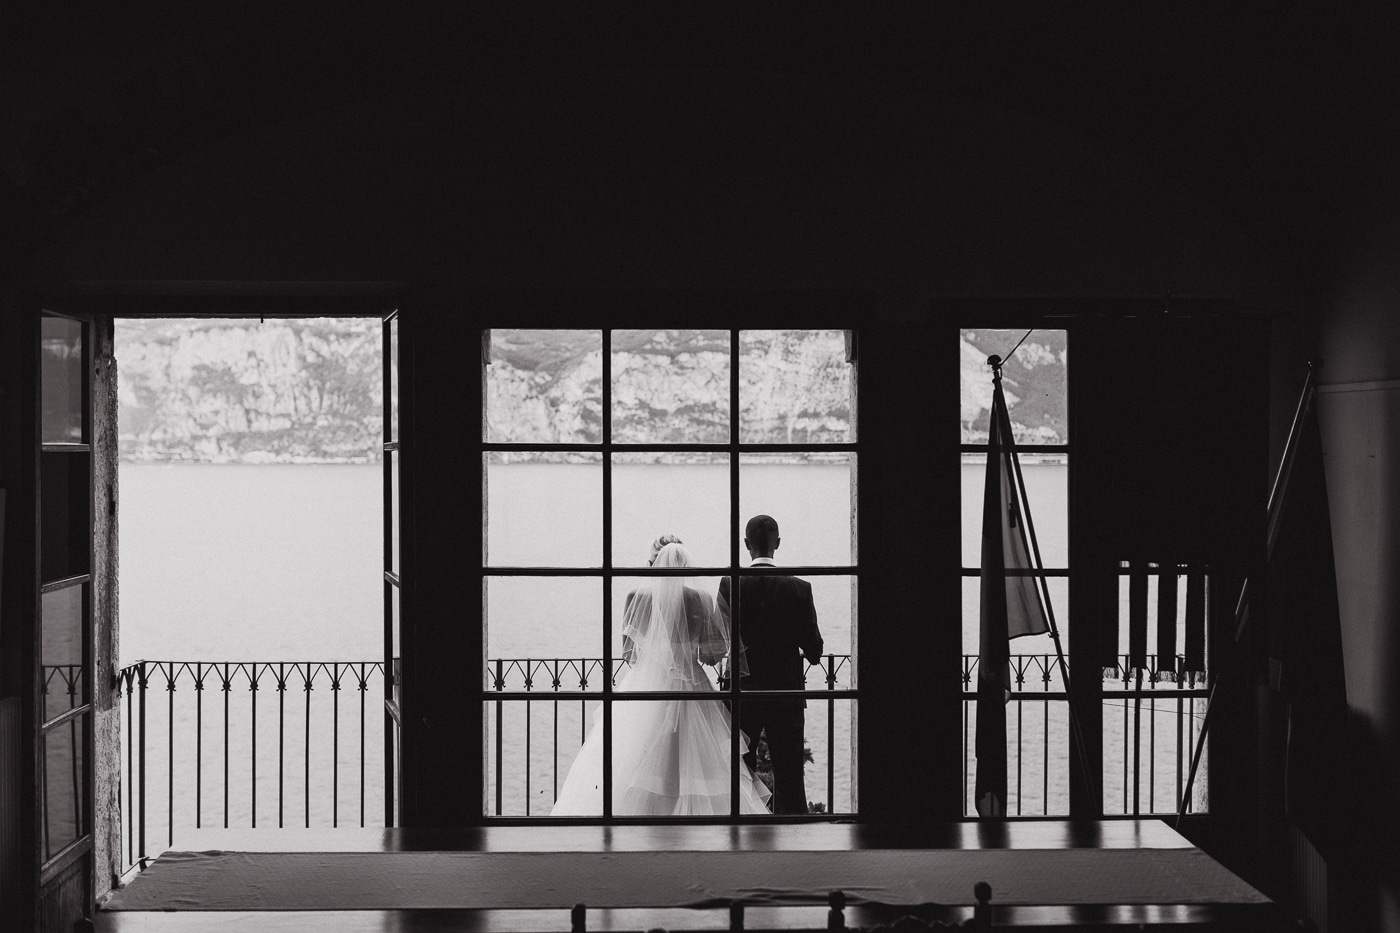 Bride in veil and groom standing on balcony overlooking lake garda and mountains with windows in the foreground